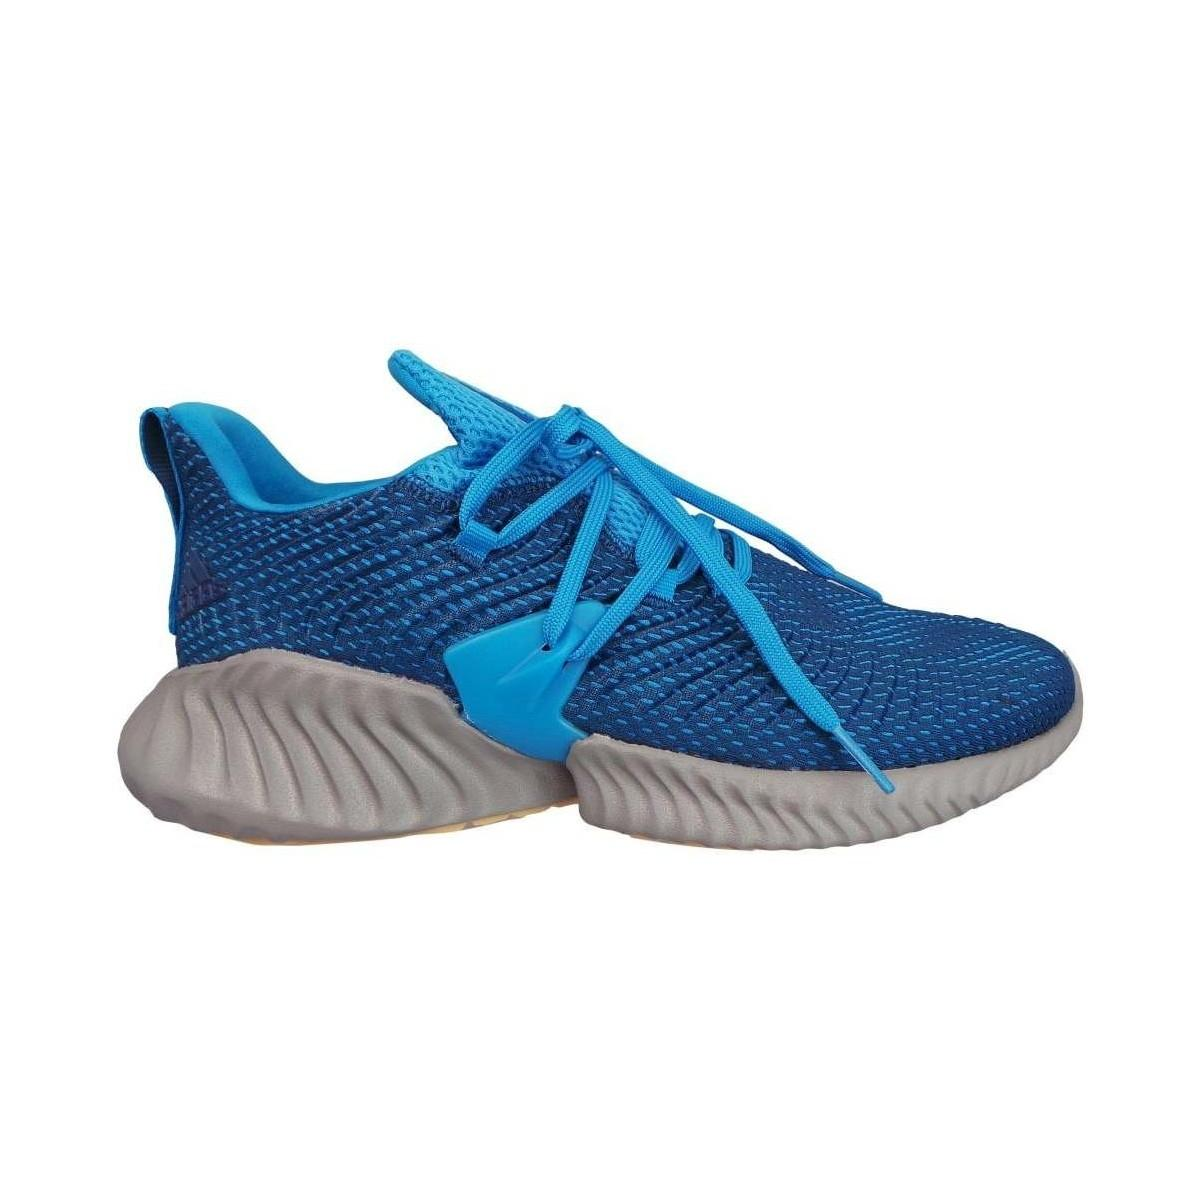 c754efb198e64 adidas Alphabounce Instinct M Men s Shoes (trainers) In Blue in Blue ...